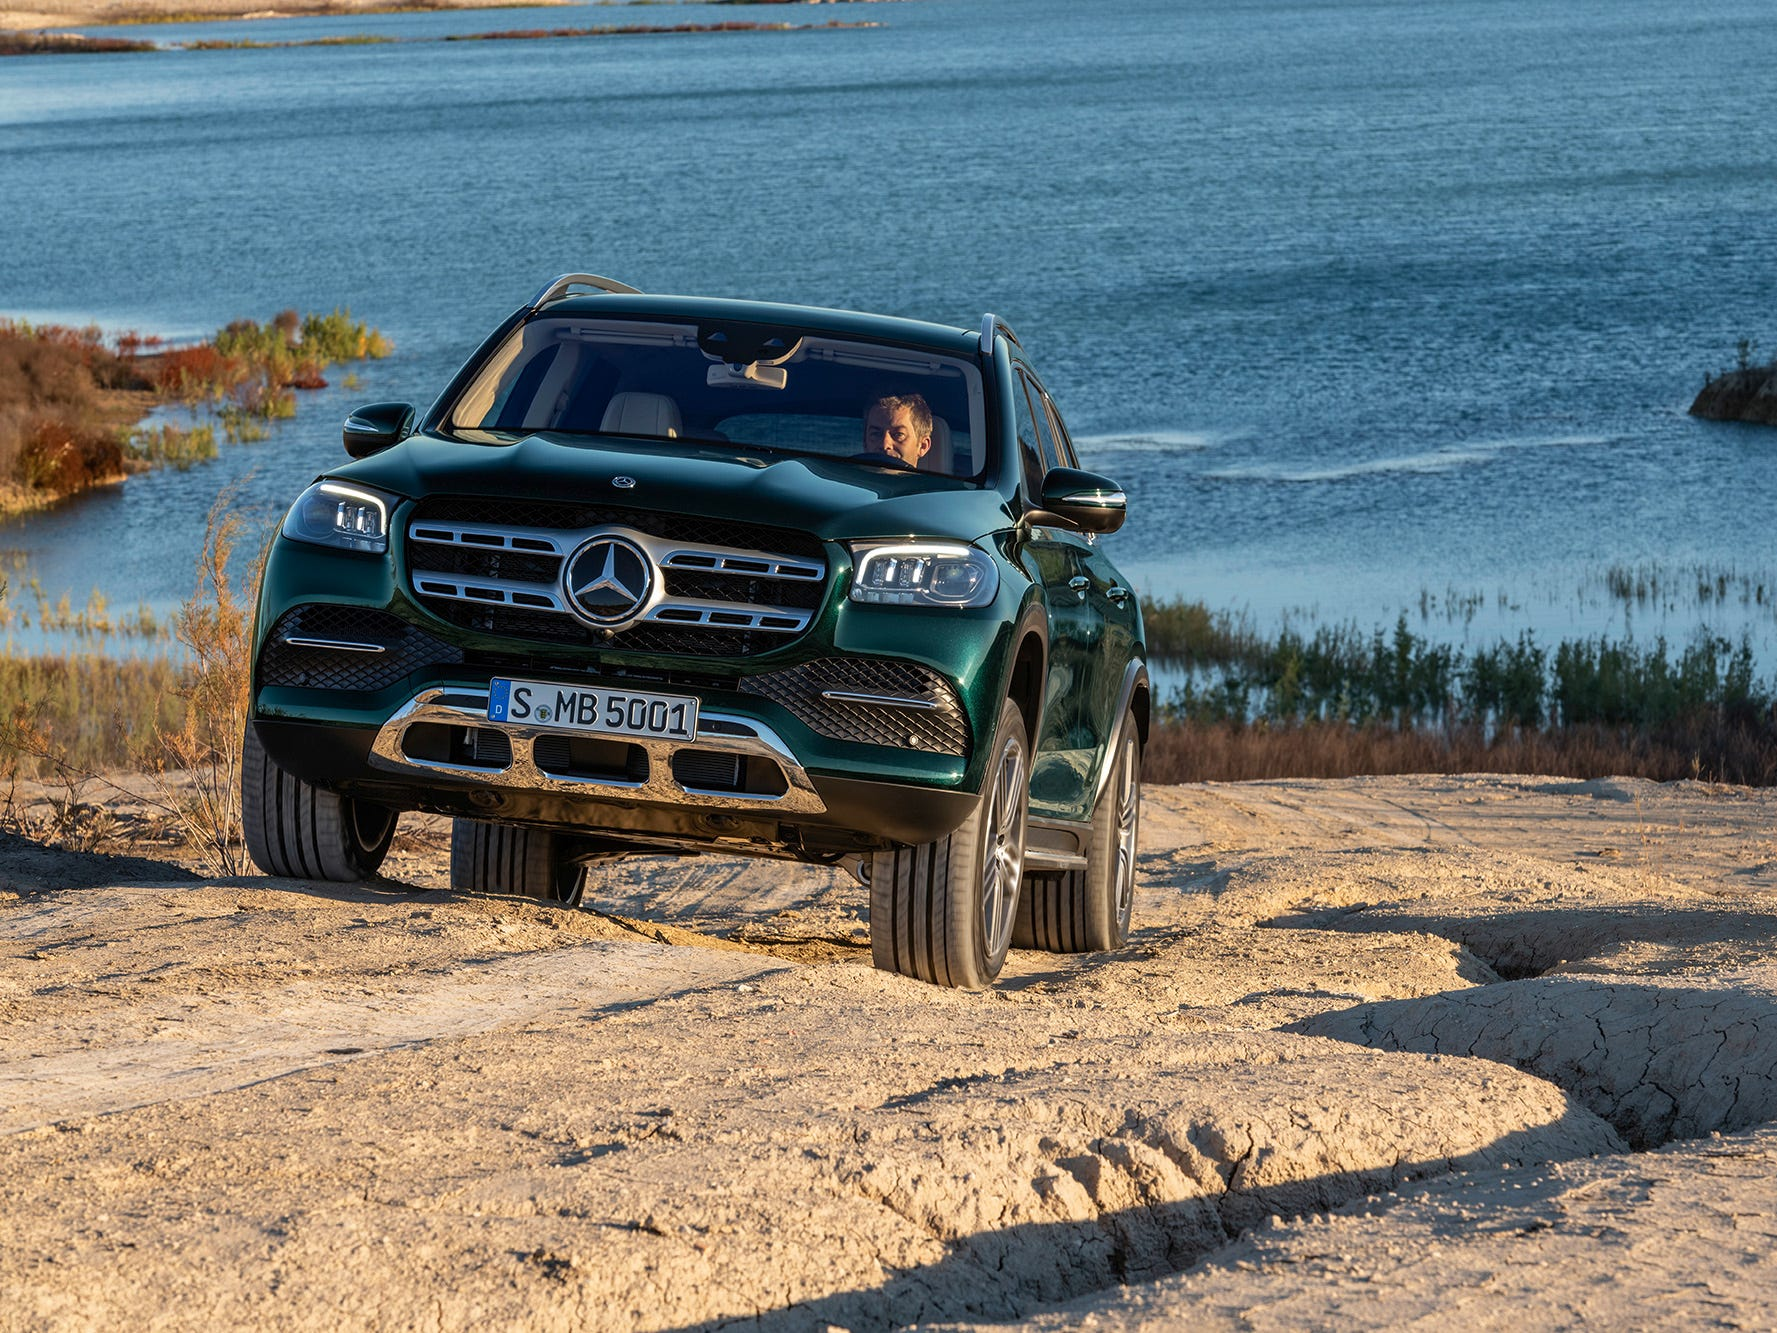 2020 Mercedes-Benz GLS. The Mercedes-Benz GLS is the largest and most luxurious SUV in the Mercedes-Benz product portfolio, and the new generation offers even more space, comfort and luxury than the highly successful previous generation.